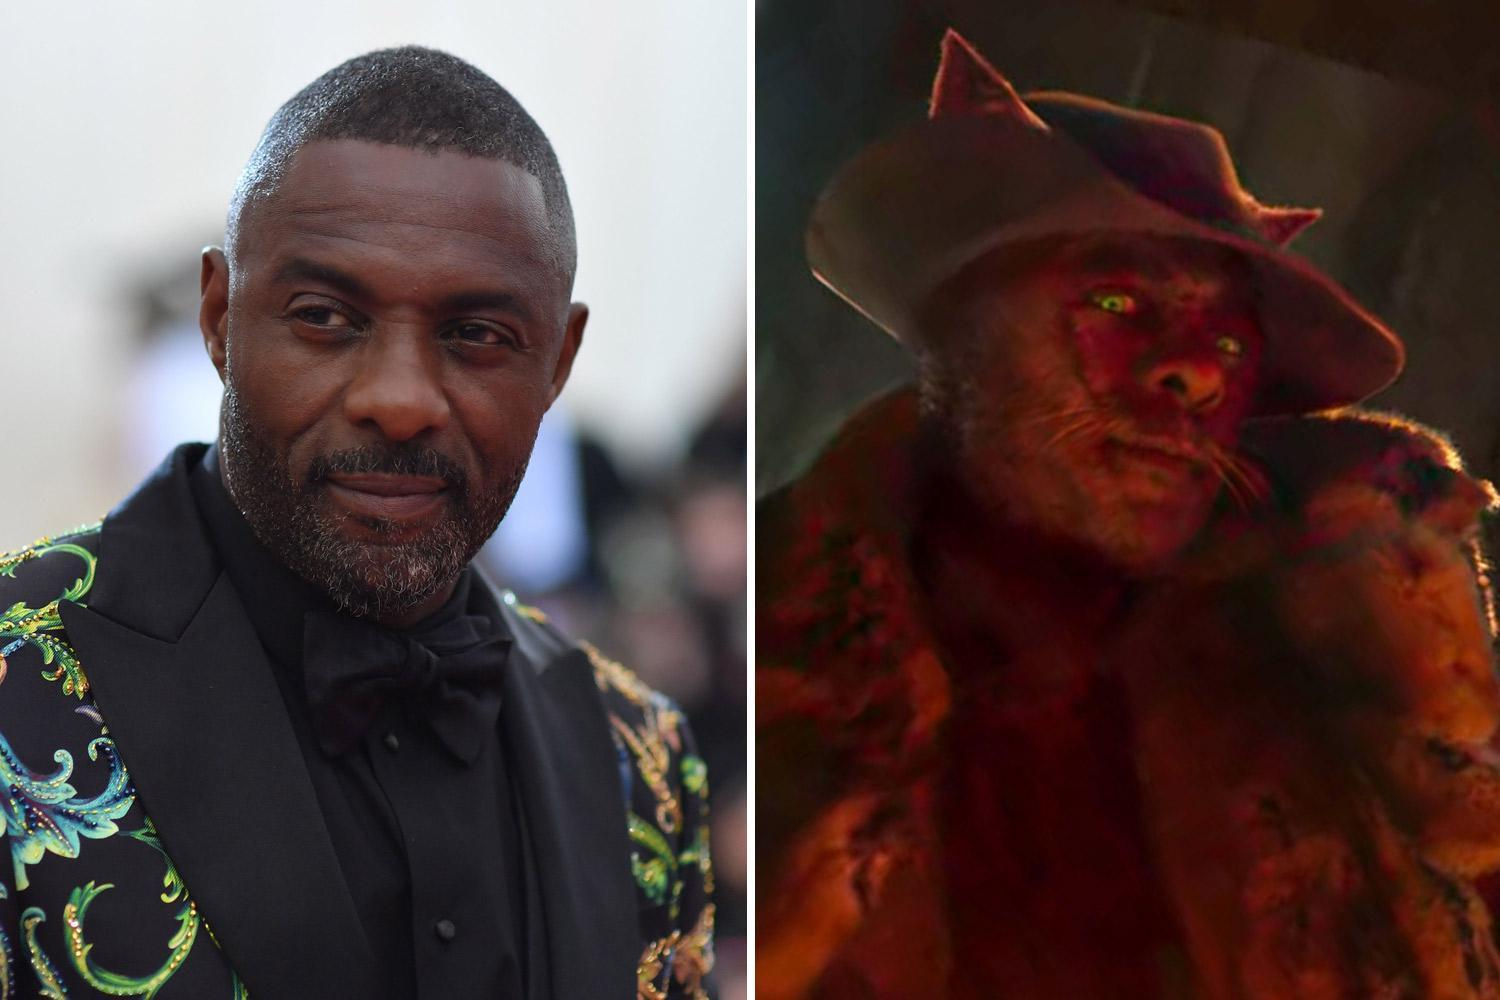 Master criminal Macavity, played by Idris Elba, is the villain of the story who possesses mystical hypnosis powers.